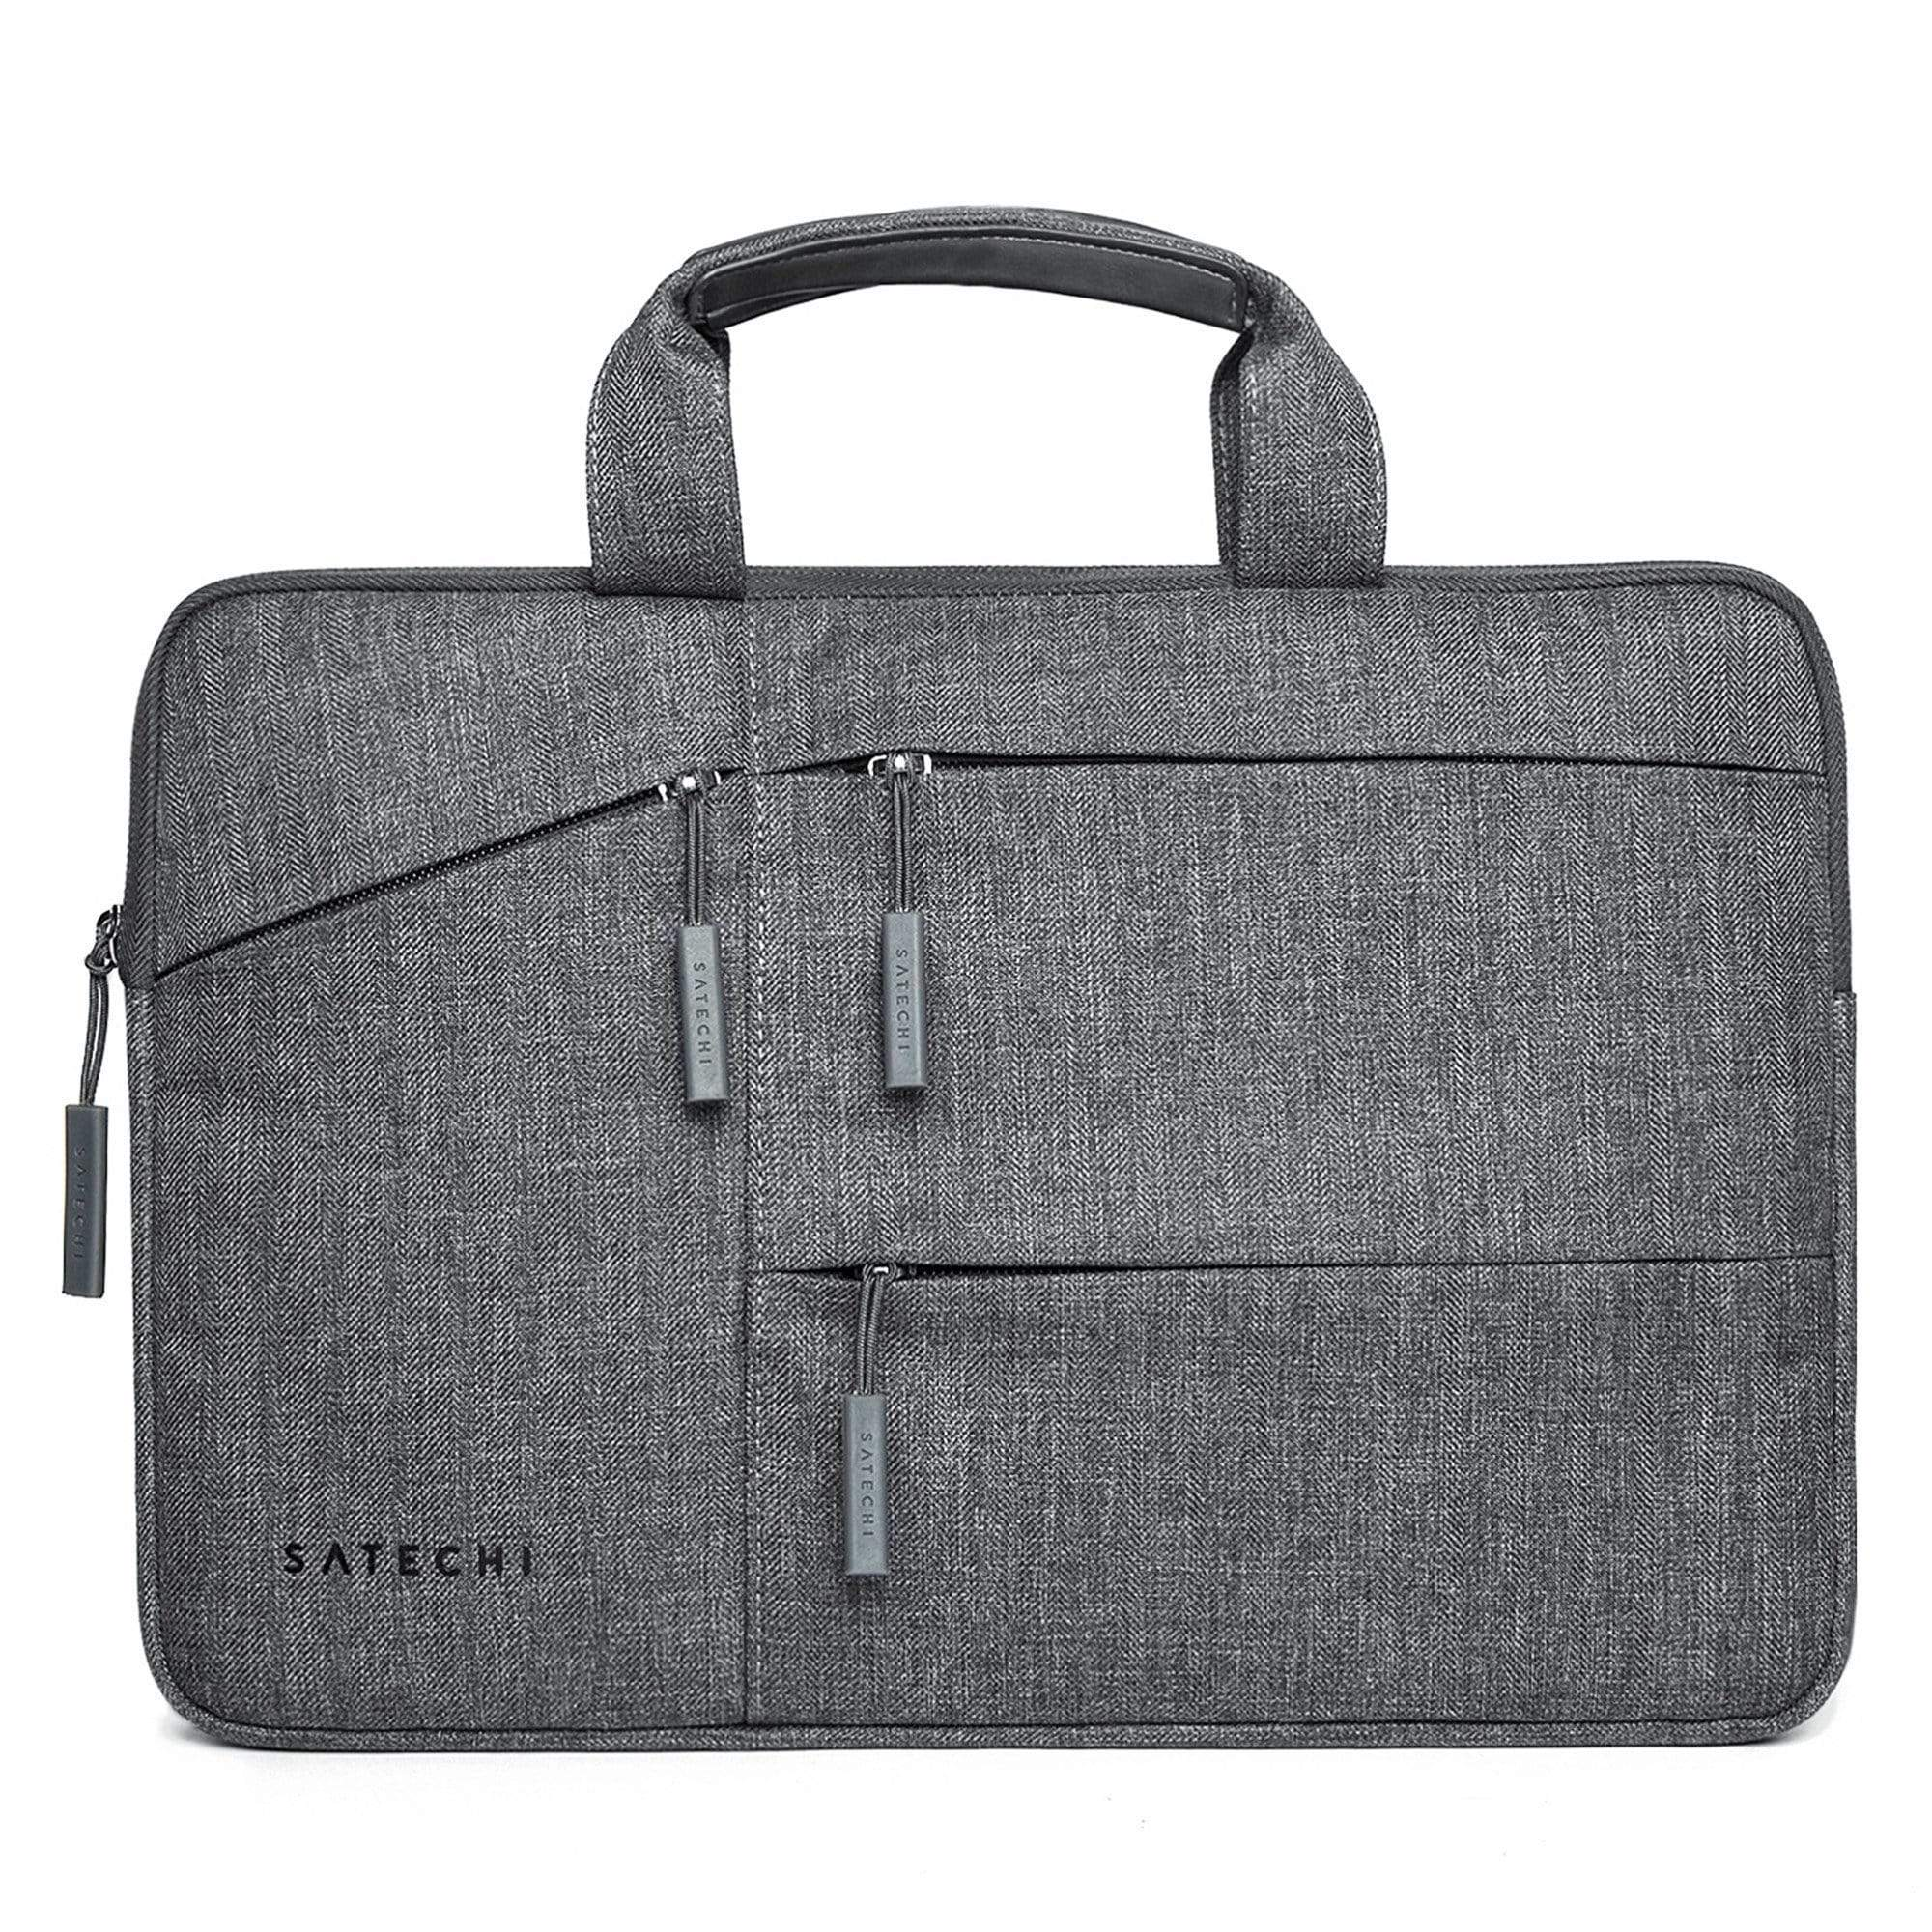 c3444f9574af Water-Resistant Laptop Carrying Case with Pockets